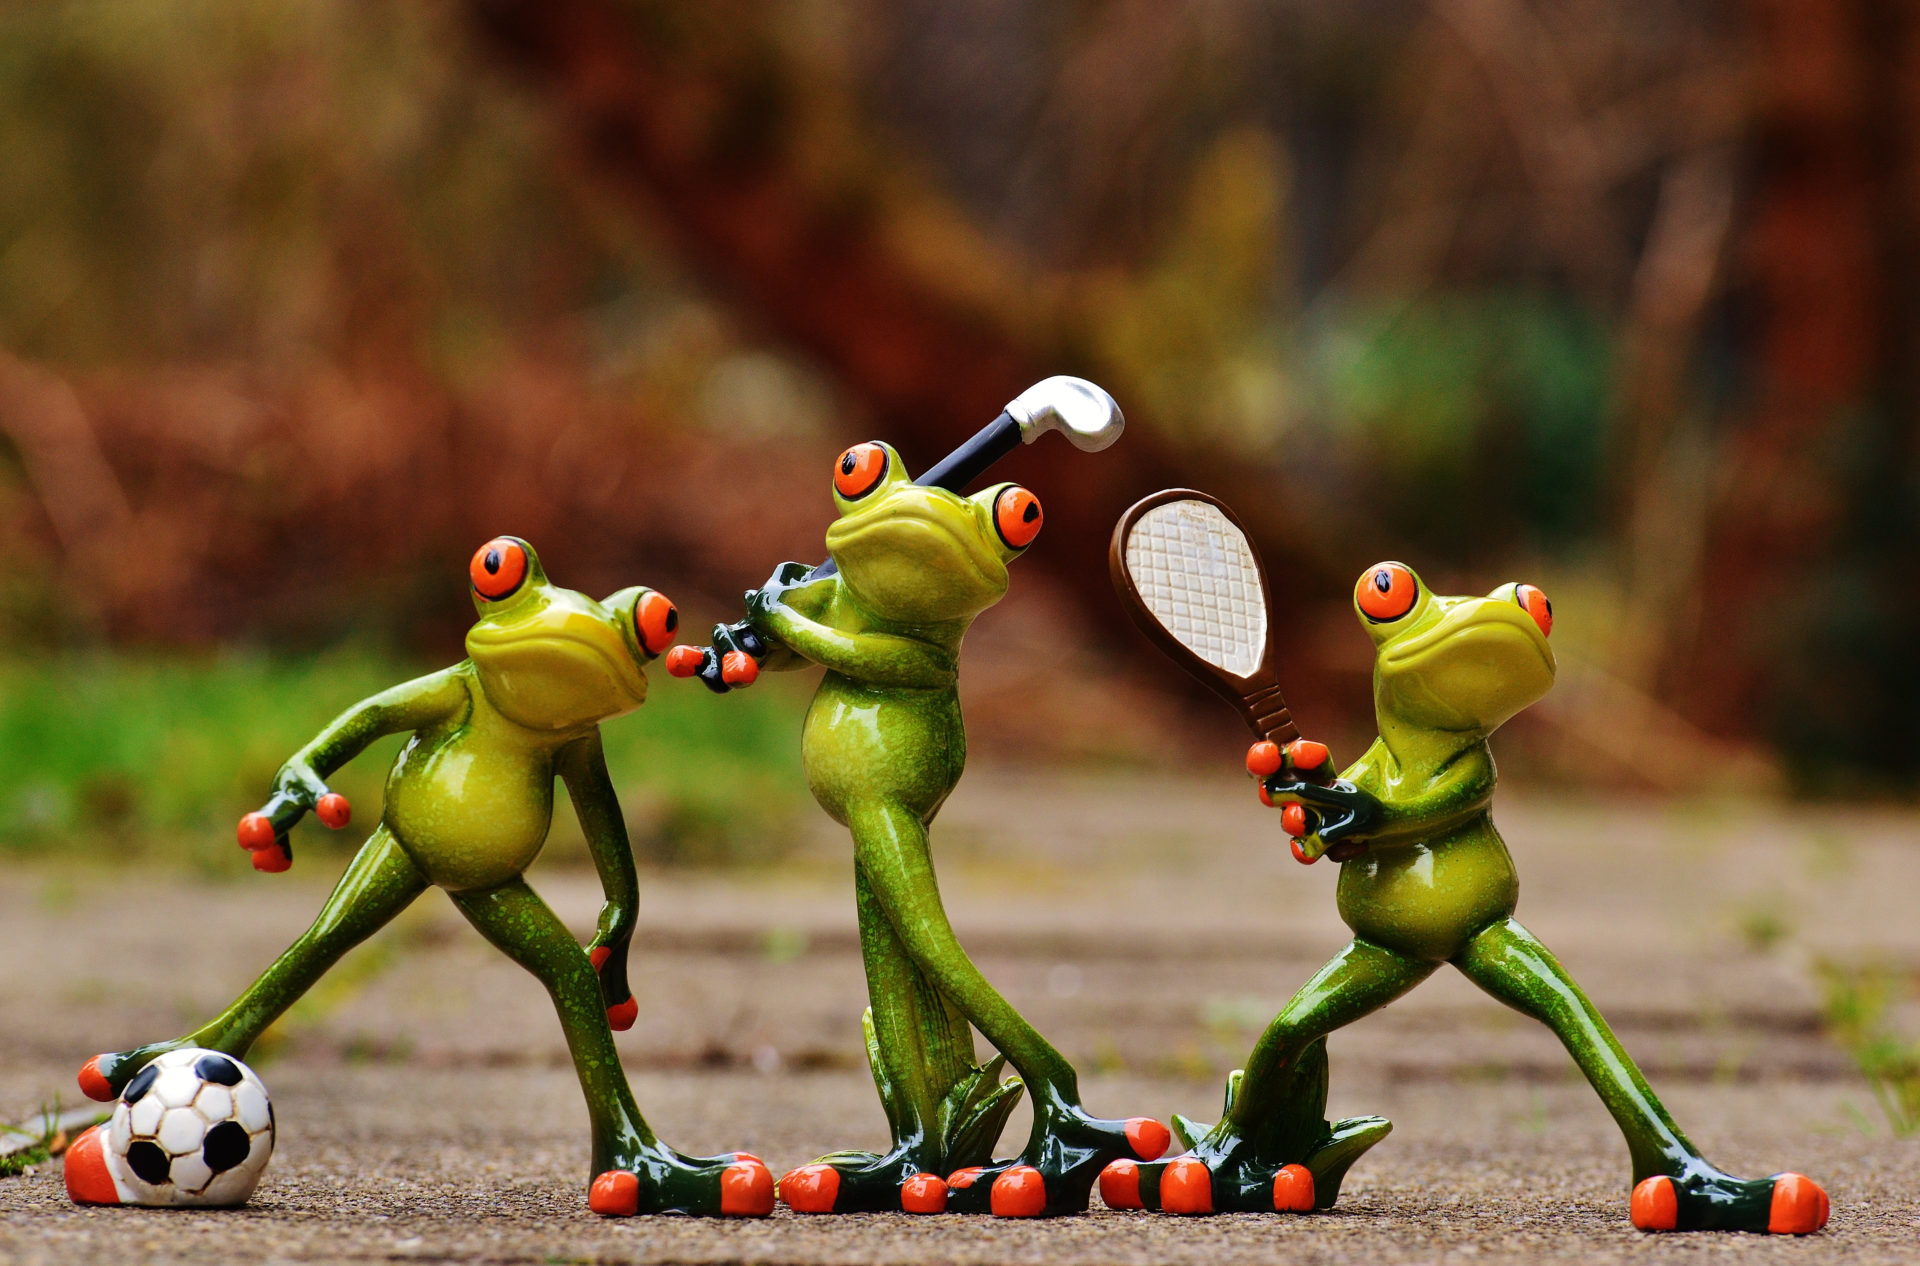 Frog figures playing sport